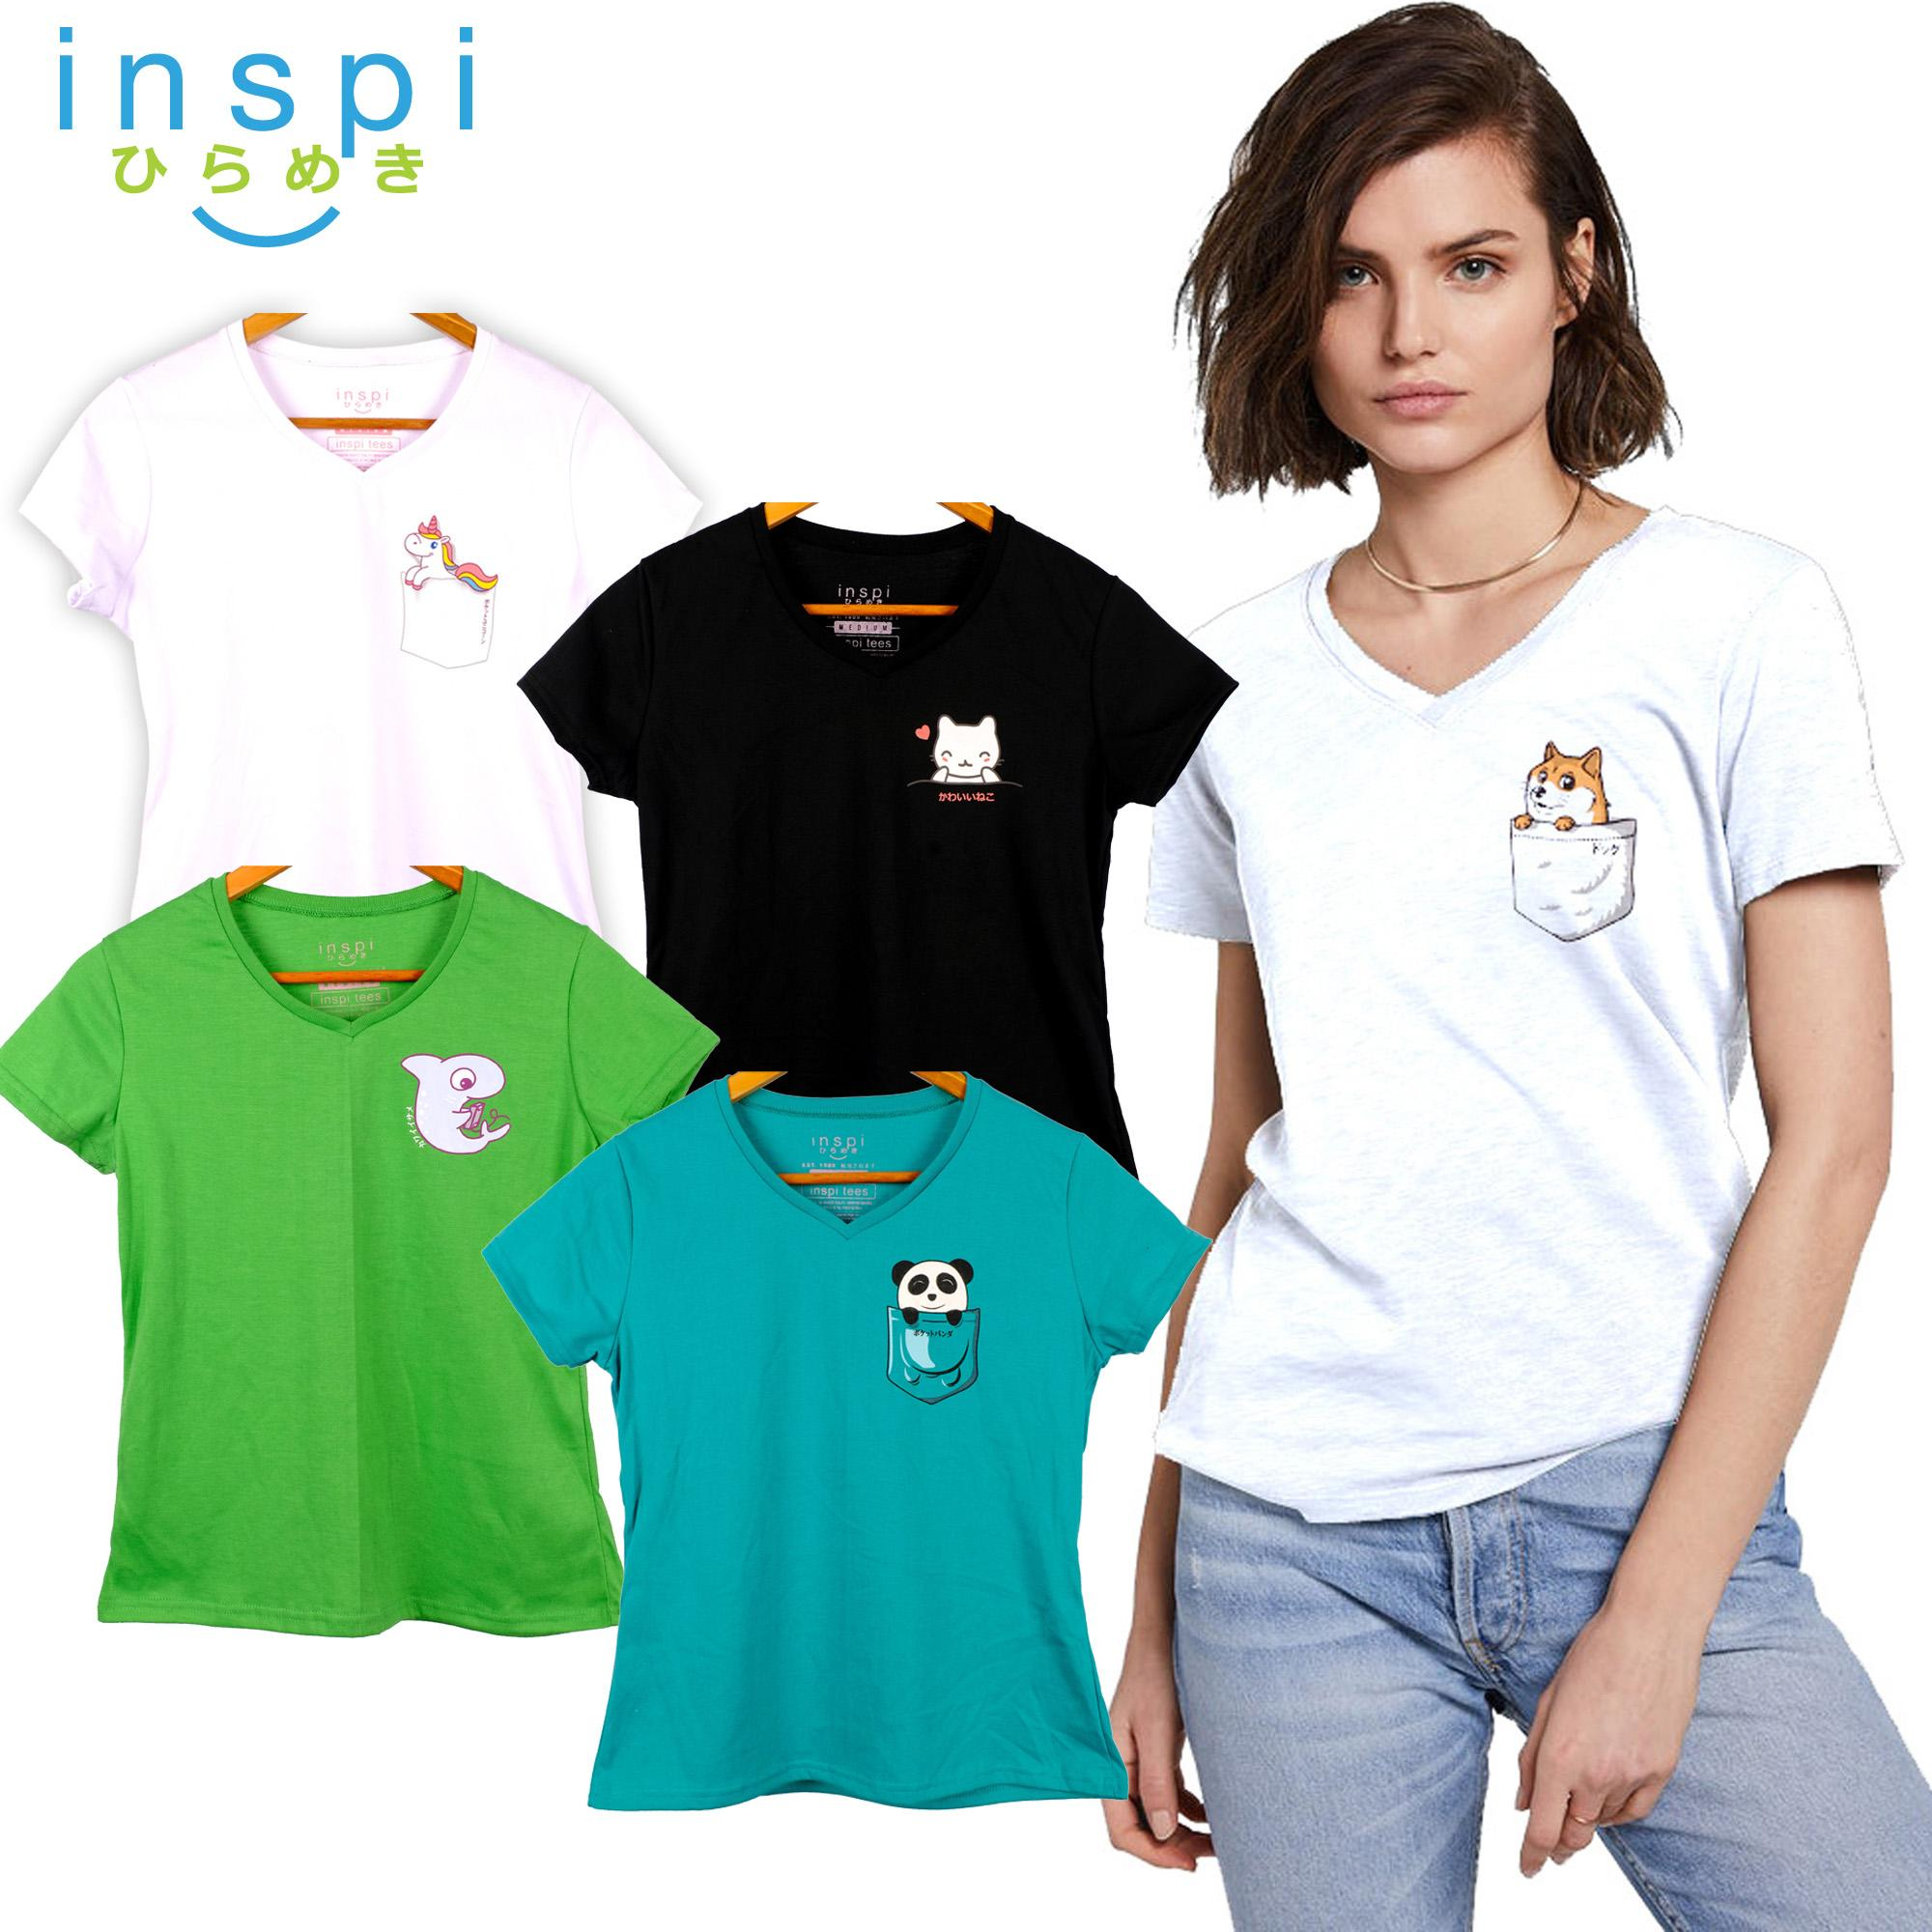 48ebd8f1f536 INSPI Tees Ladies Semi Fit Pocket Friends Collection tshirt printed graphic  tee t shirt shirts tshirts